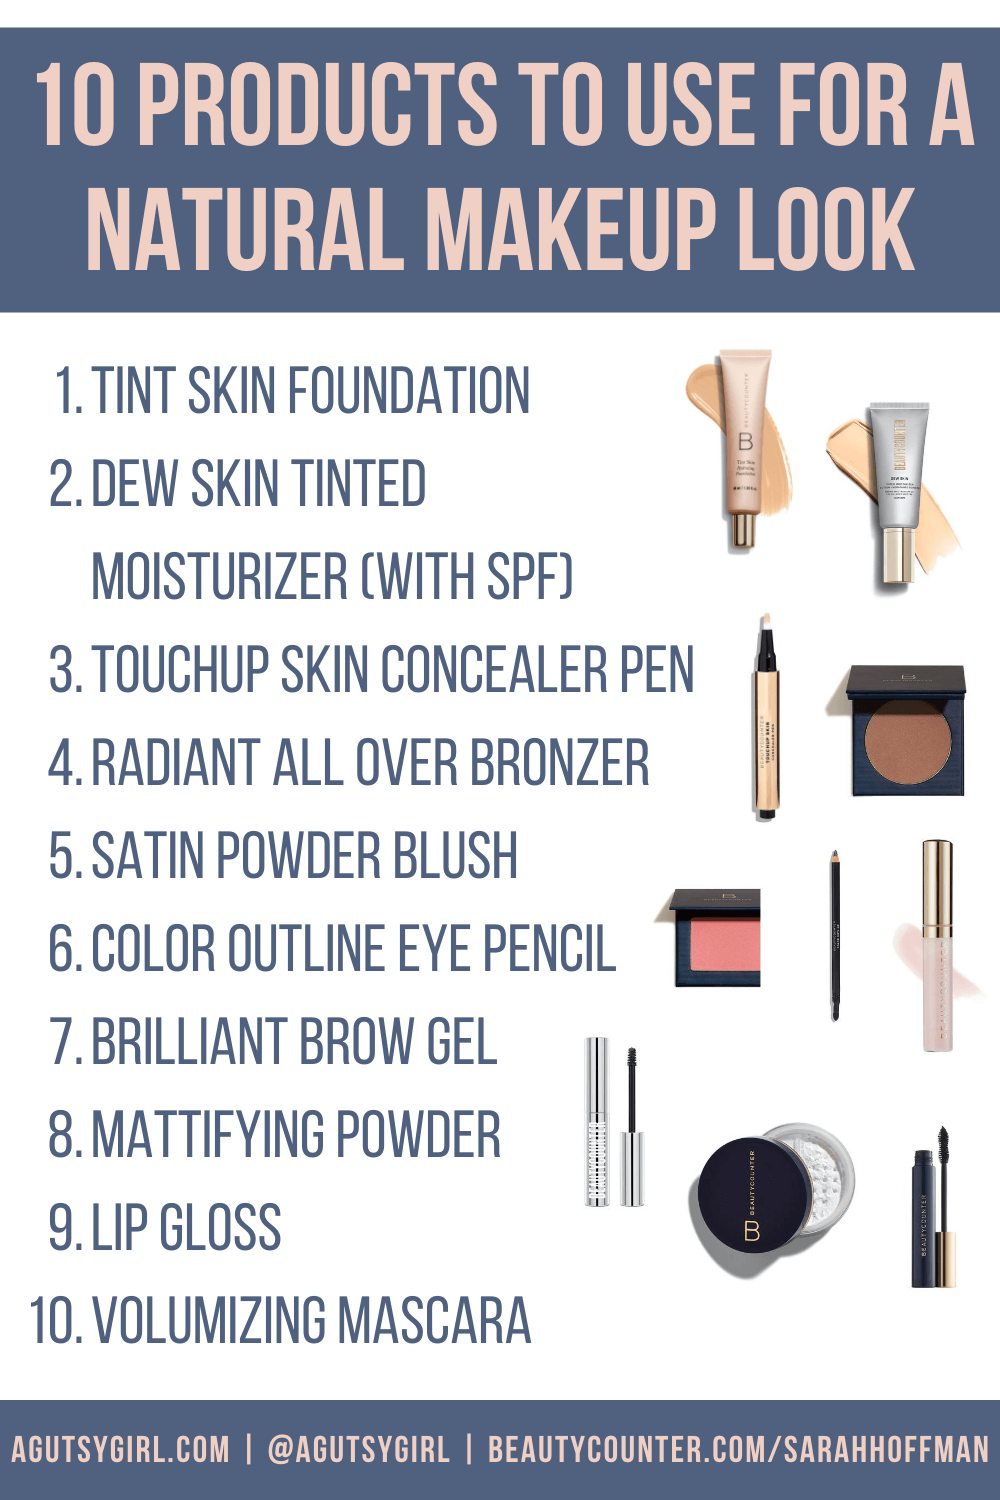 10 products to use for a natural makeup look after perioral dermatitis agutsygirl.com #guthealth #beautycounter #nontoxicmakeup #acne #dermatitis